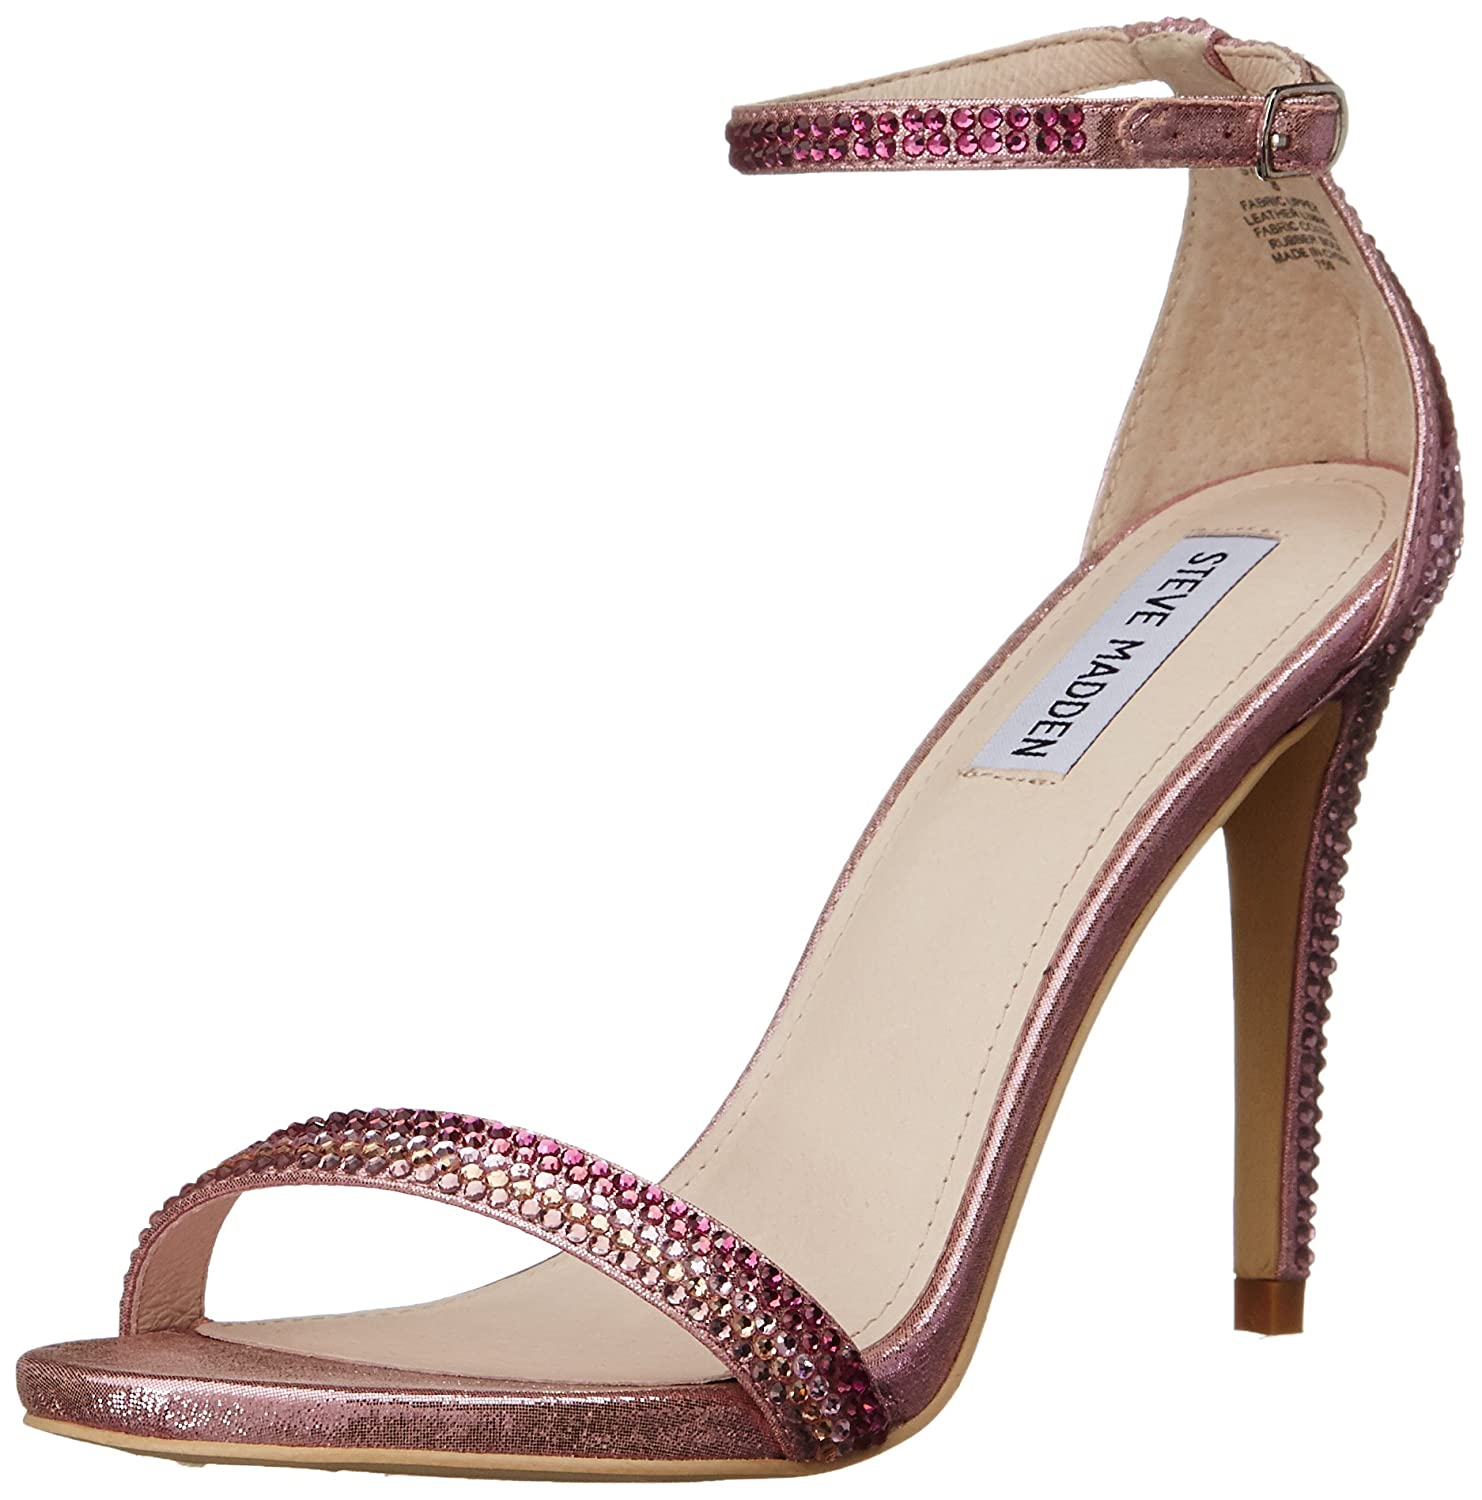 Amazon.com | Steve Madden Women's Stecy R Dress Sandal, Pink/Multi, 9 M US  | Heeled Sandals